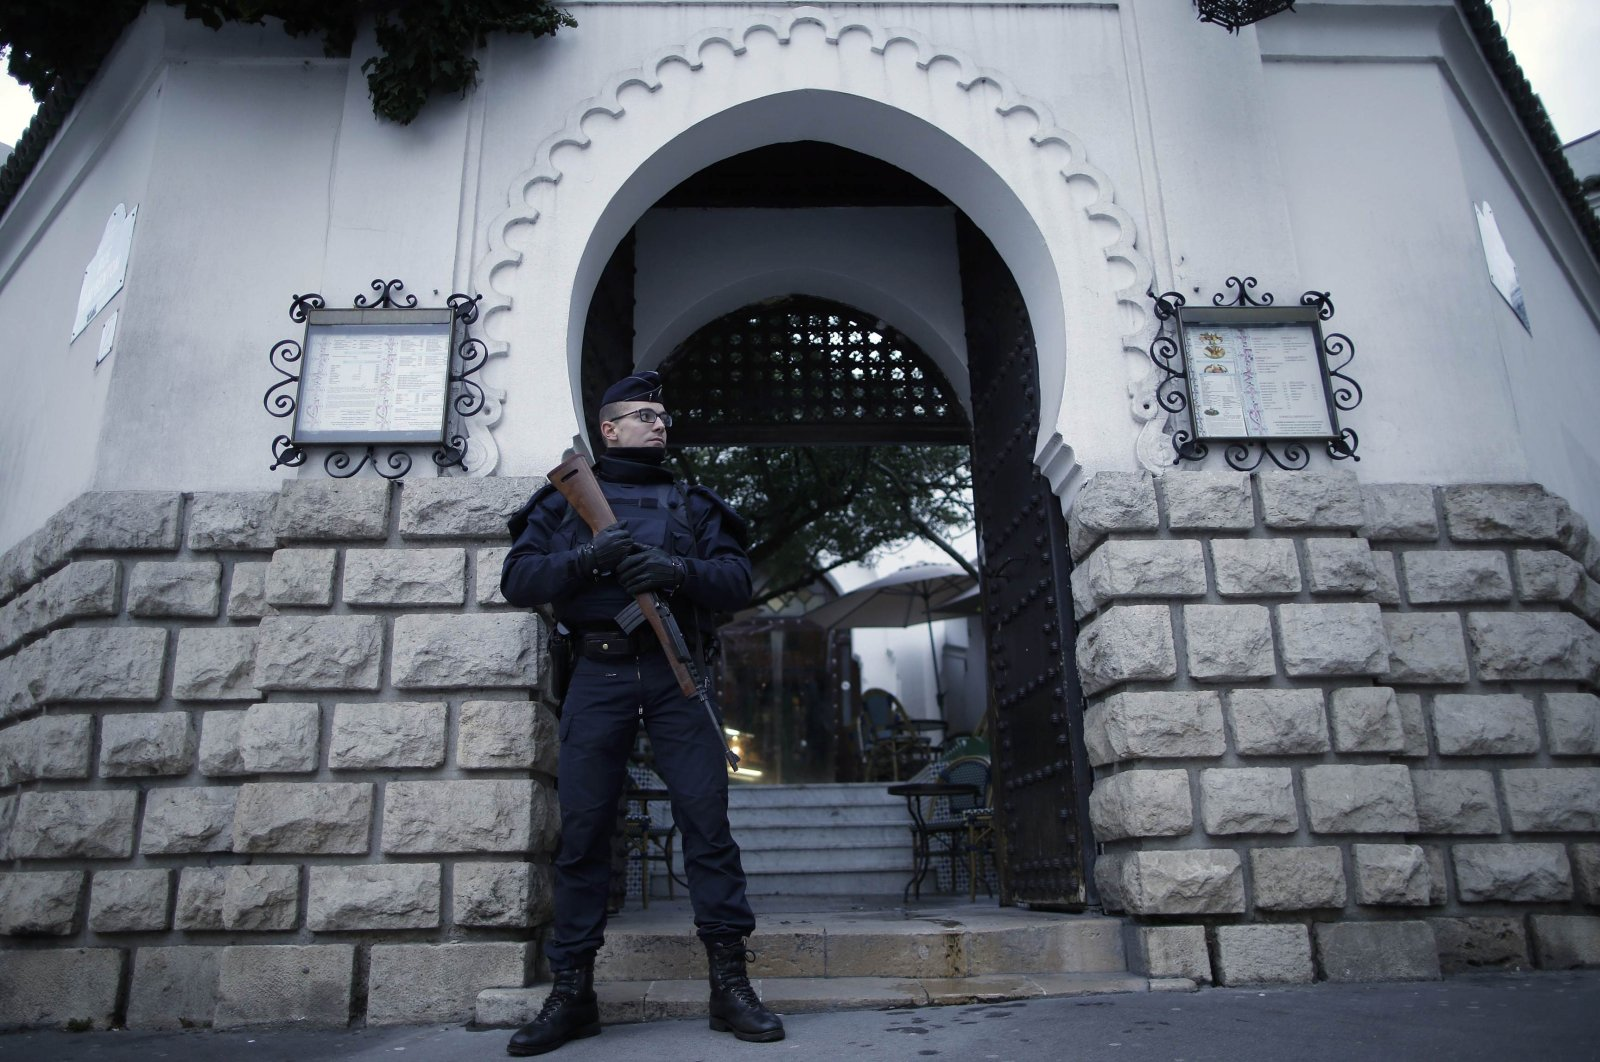 A French police officer stands guard in front of the entrance of the Paris Grand Mosque in this undated file photo. (Reuters File Photo)